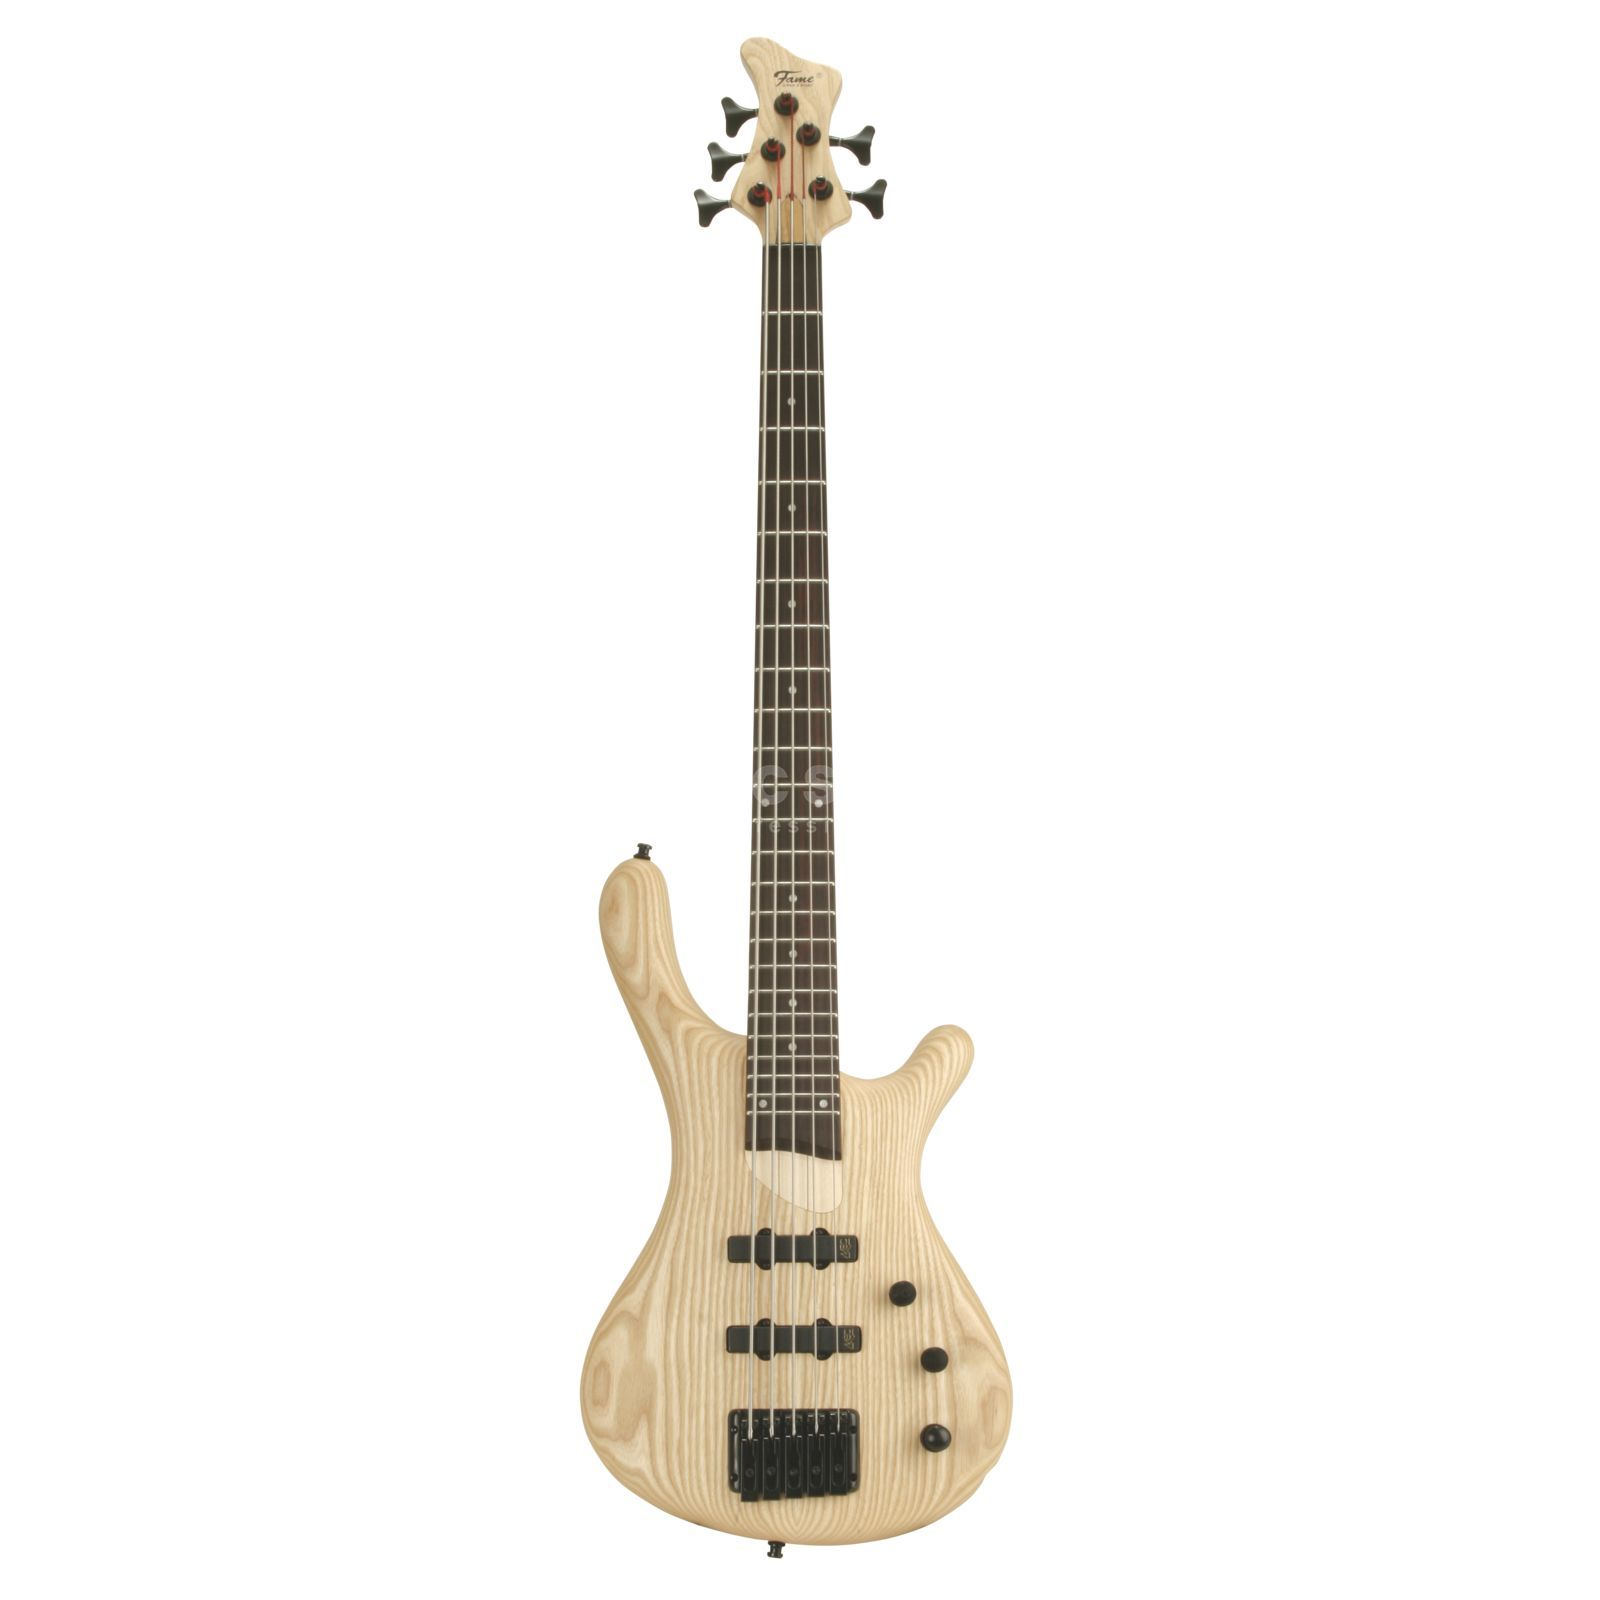 Fame Baphomet Blonde 5, 5-String E- Bass Guitar, Oil Finish Produktbillede